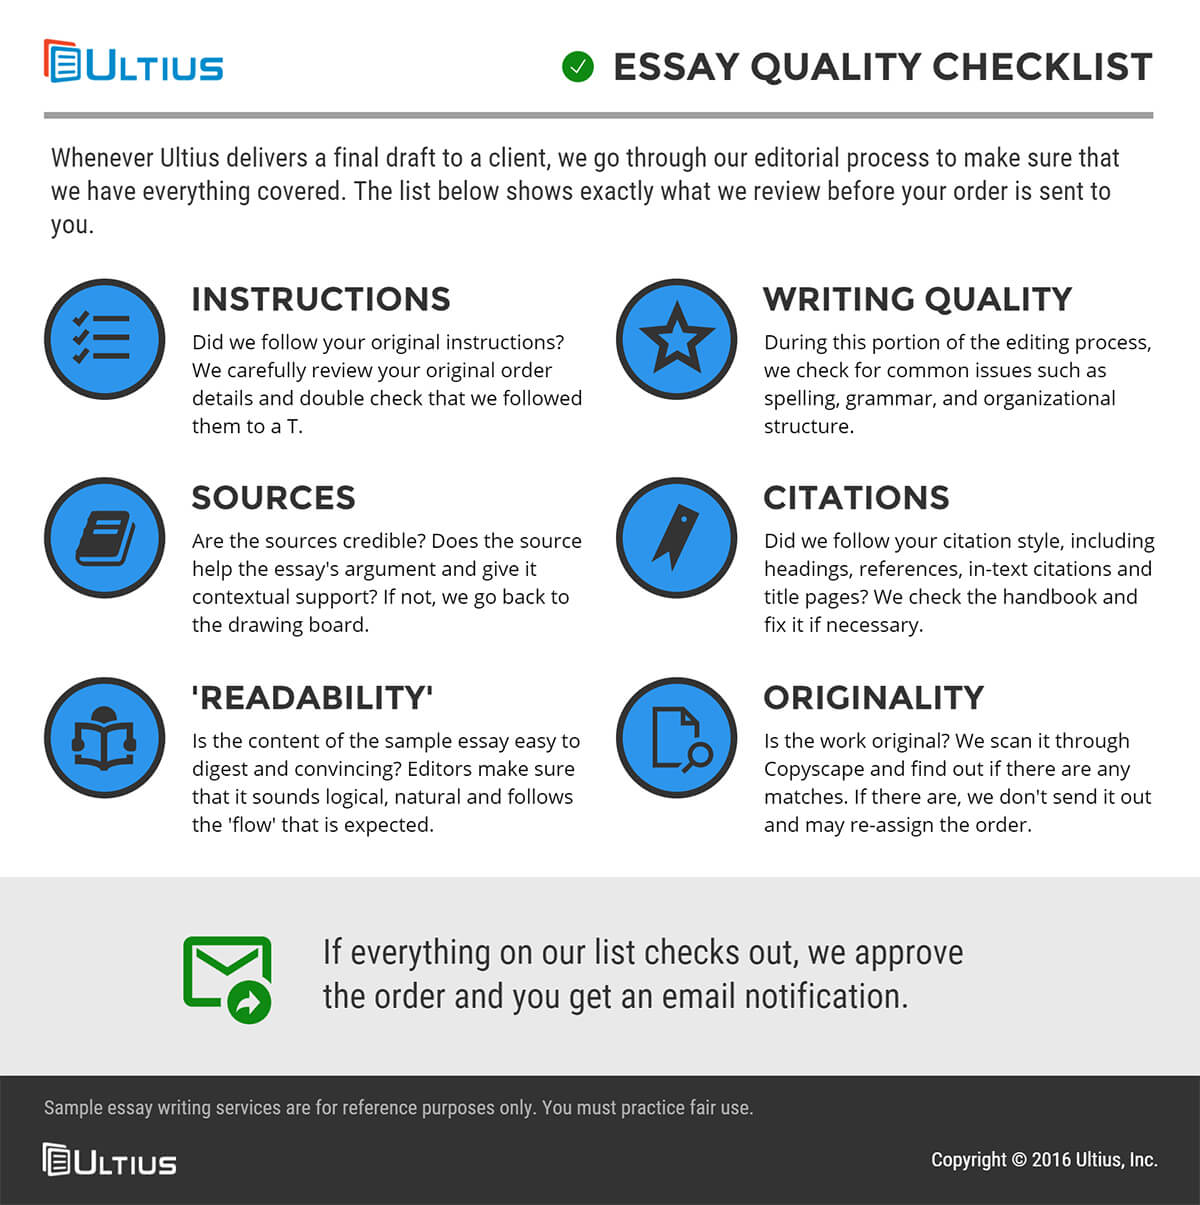 buying an essay buy essay online help and buy professionals essays buy essay online original american writers ultiuspurchased essay quality checklist